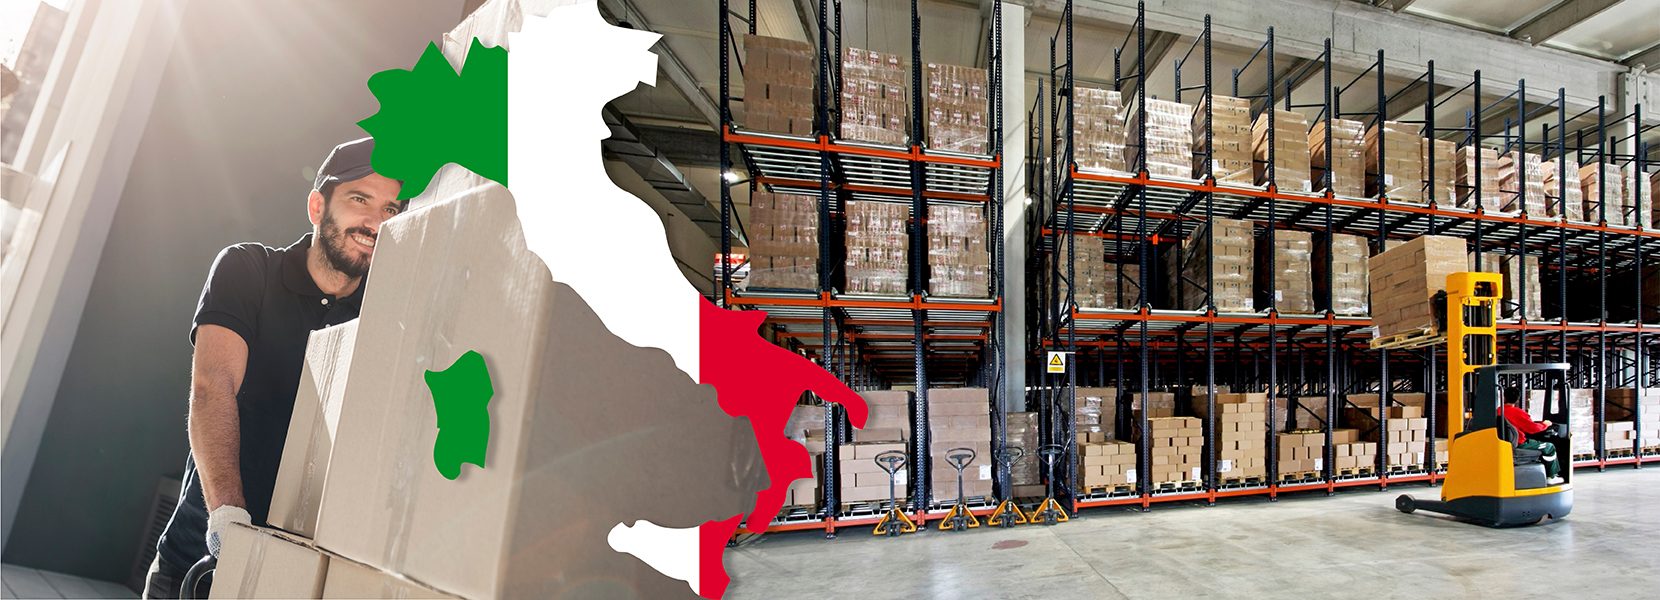 Ciao Italia! Salesupply opens a new fulfilment location in Verona, Italy